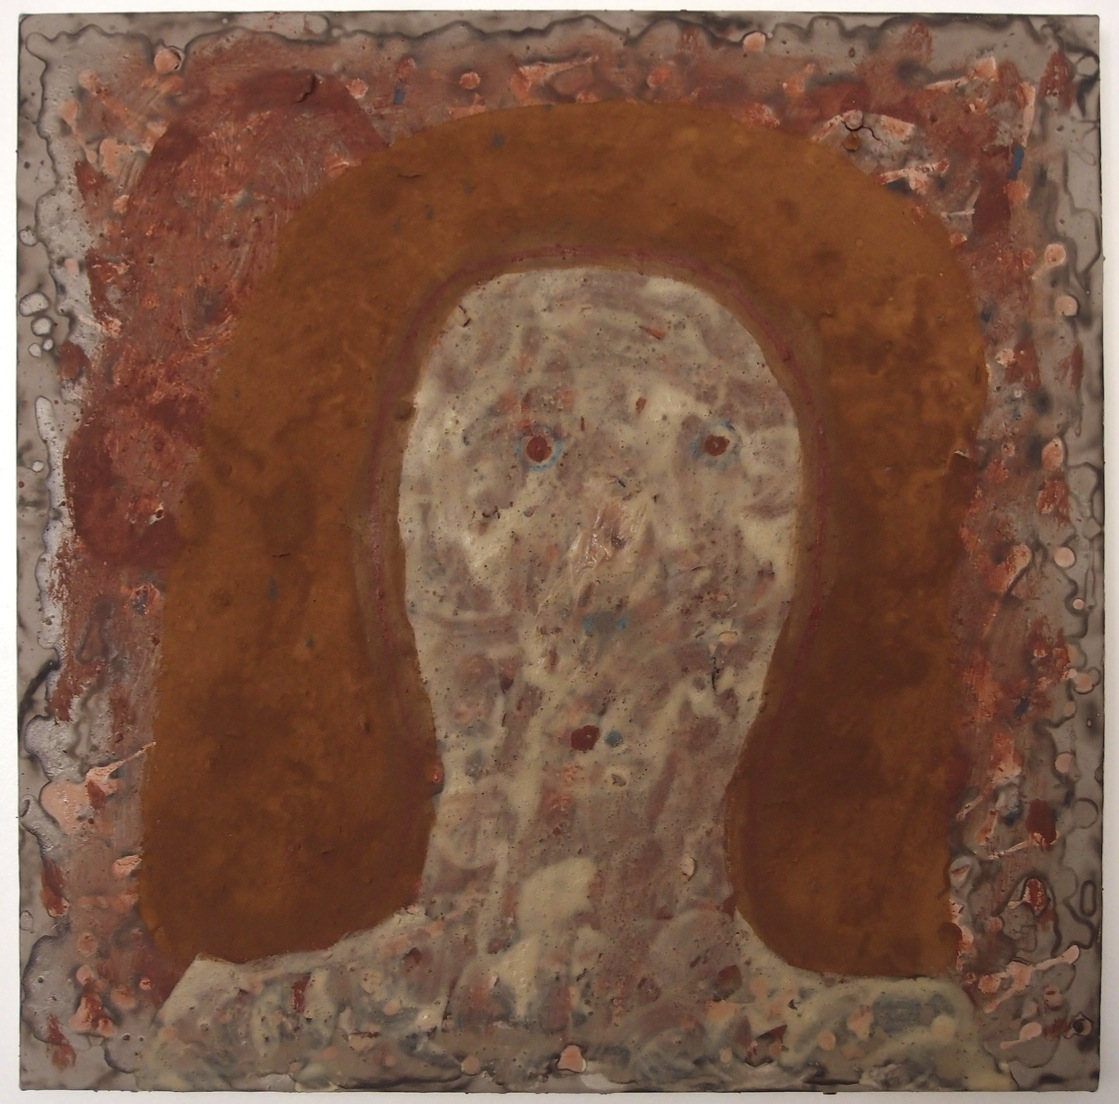 storyteller 3 (50x50cm; earth pigments with gum arabic and rabbit skin glue on canvas) © p ward 2015